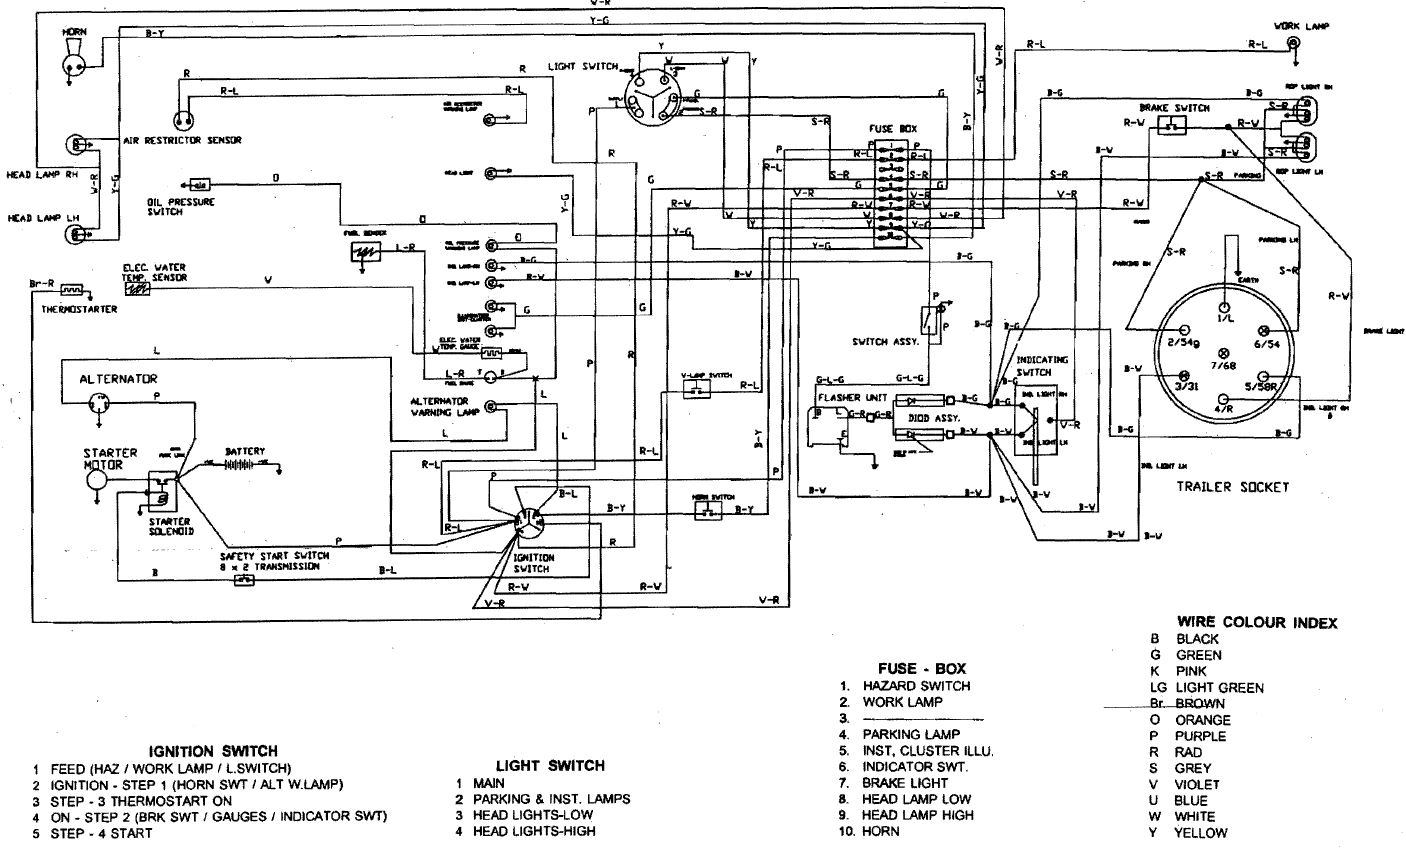 Ignition Switch Wiring Diagramsel Engine